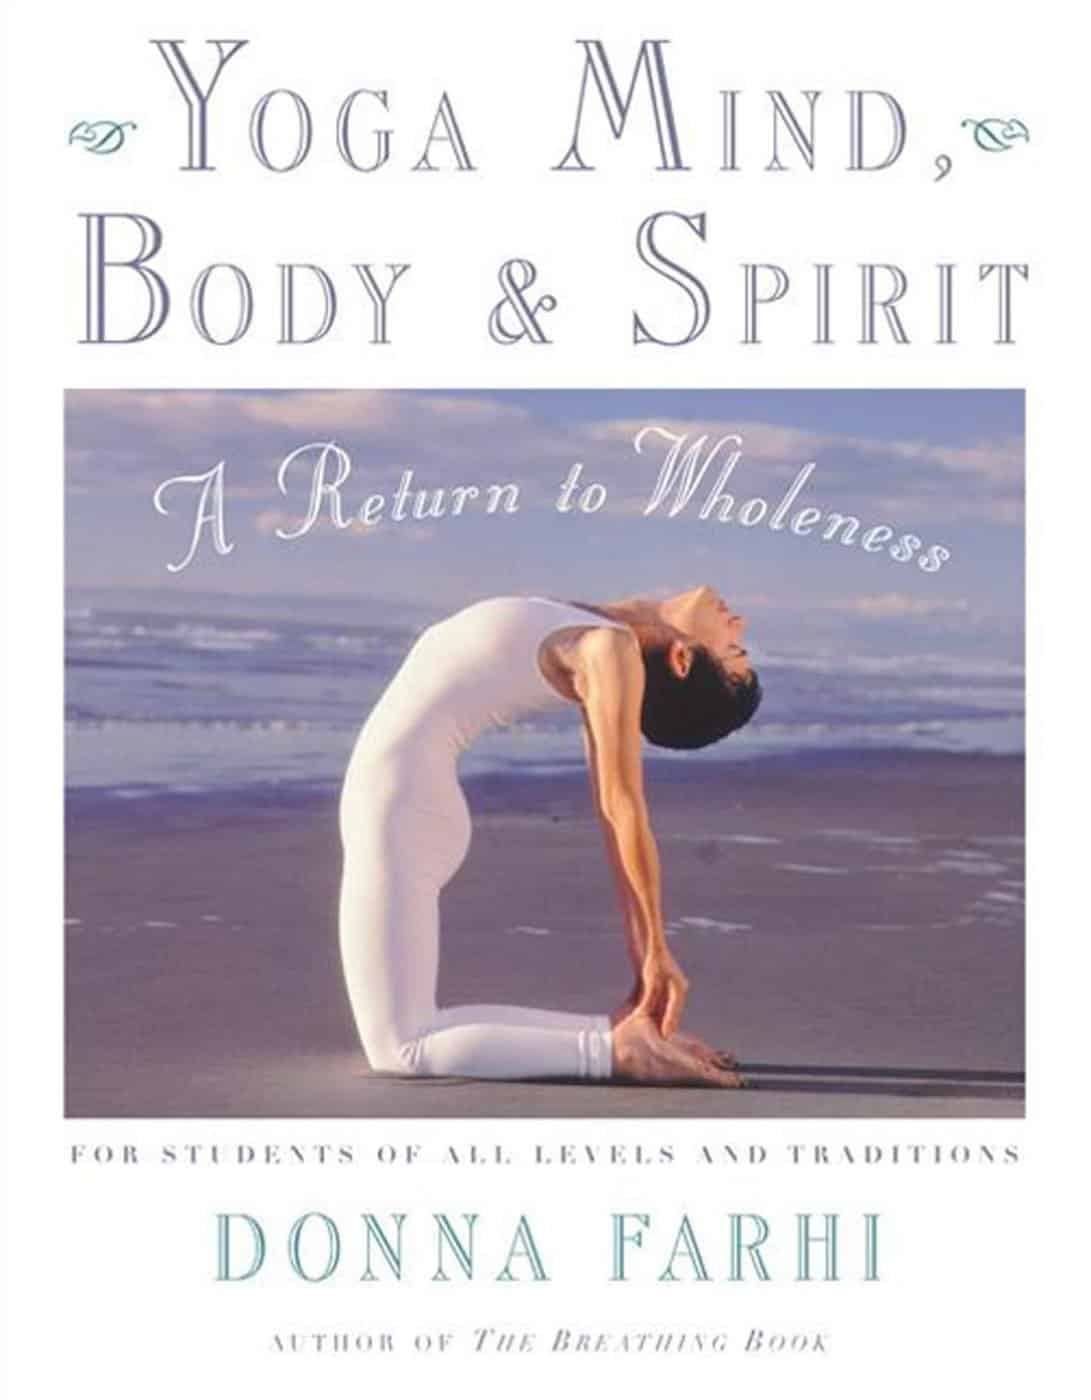 Yoga Mind Body and Spirit by Donna Farhi